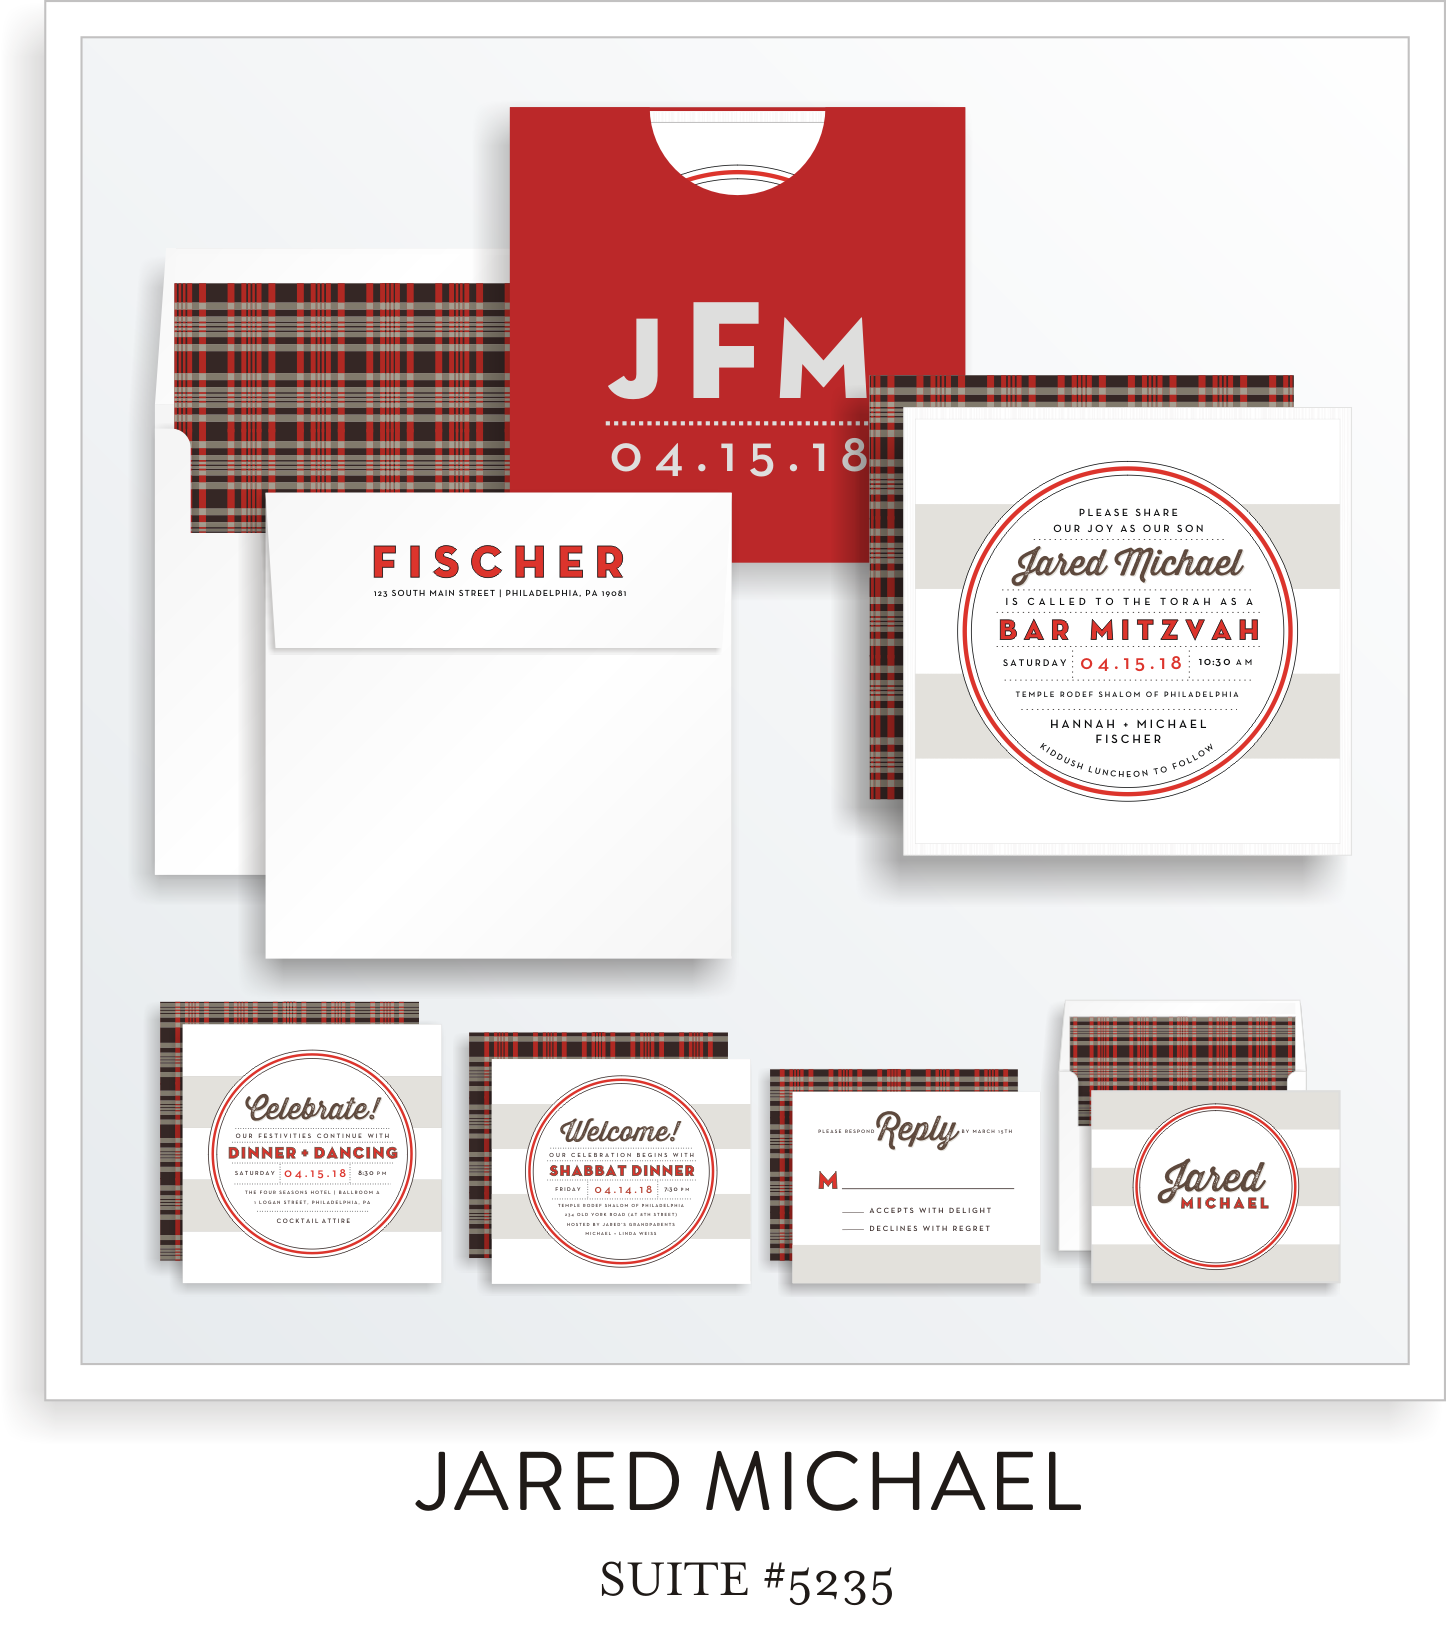 Copy of Bar Mitzvah Invitation Suite 5235 - Jared Michael